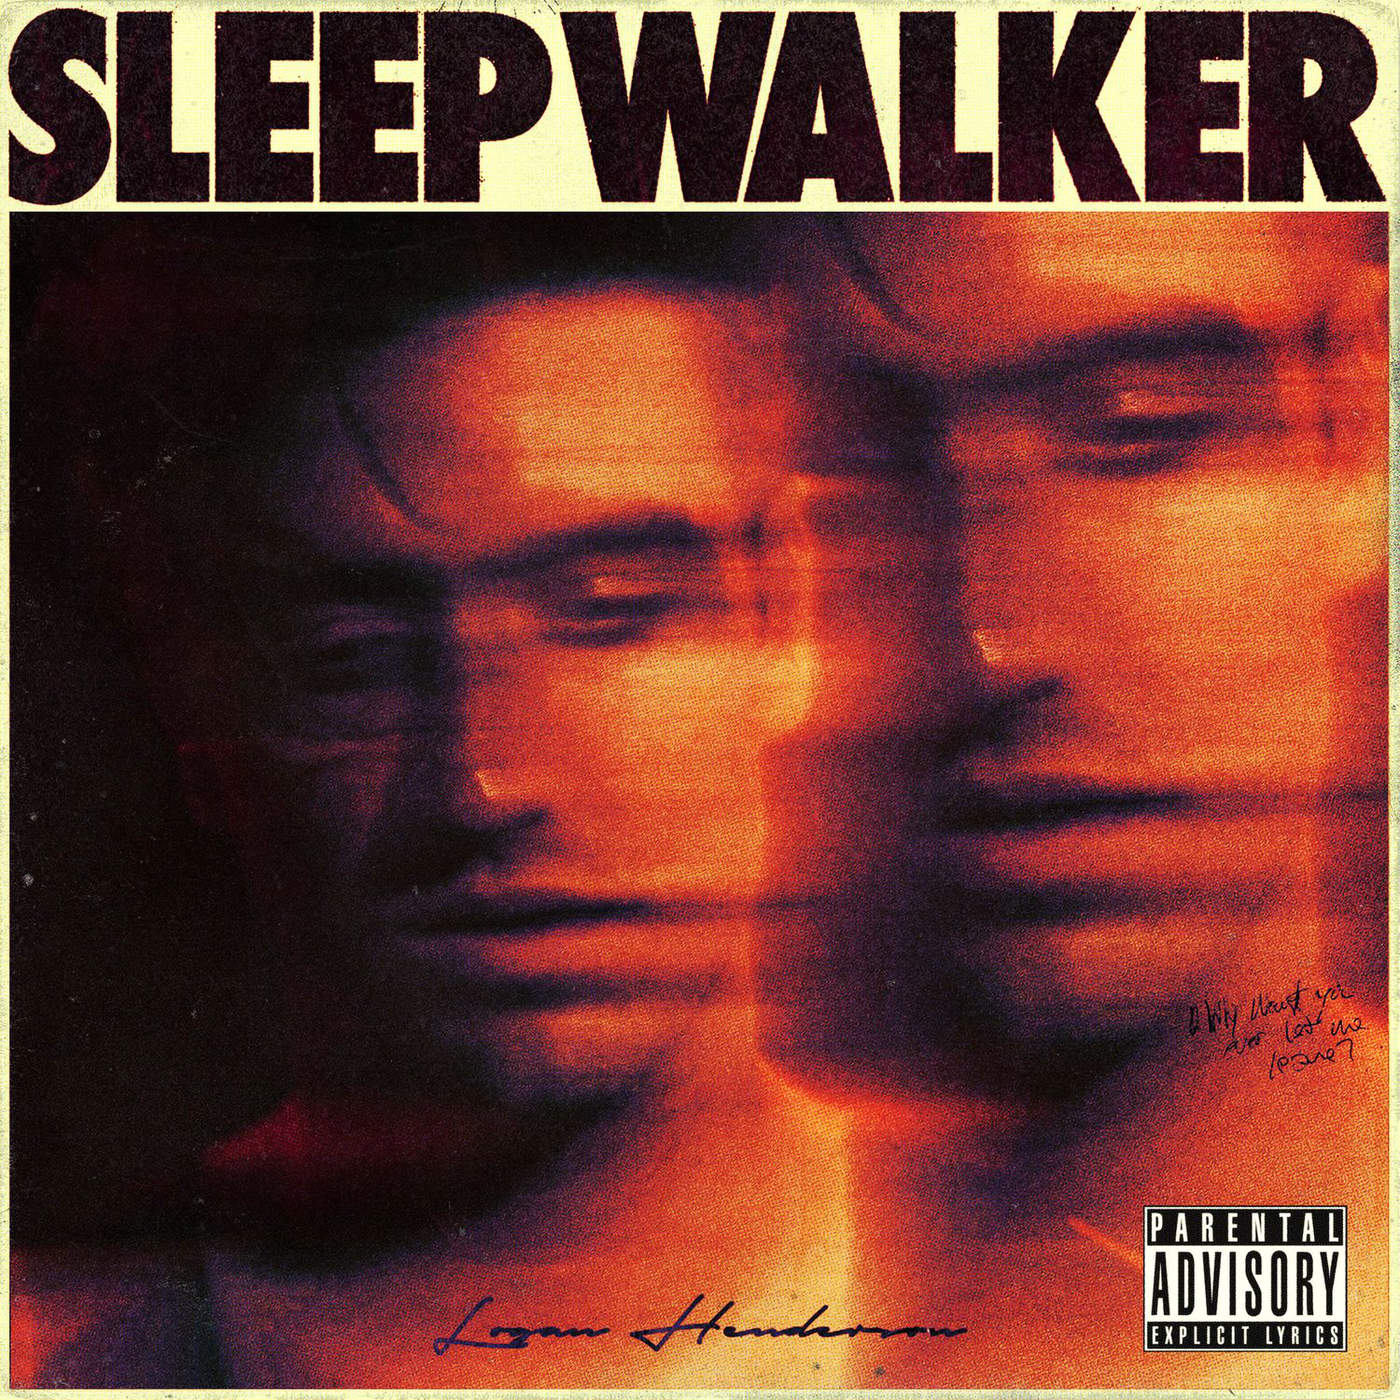 Sleepwalker - Single.jpg